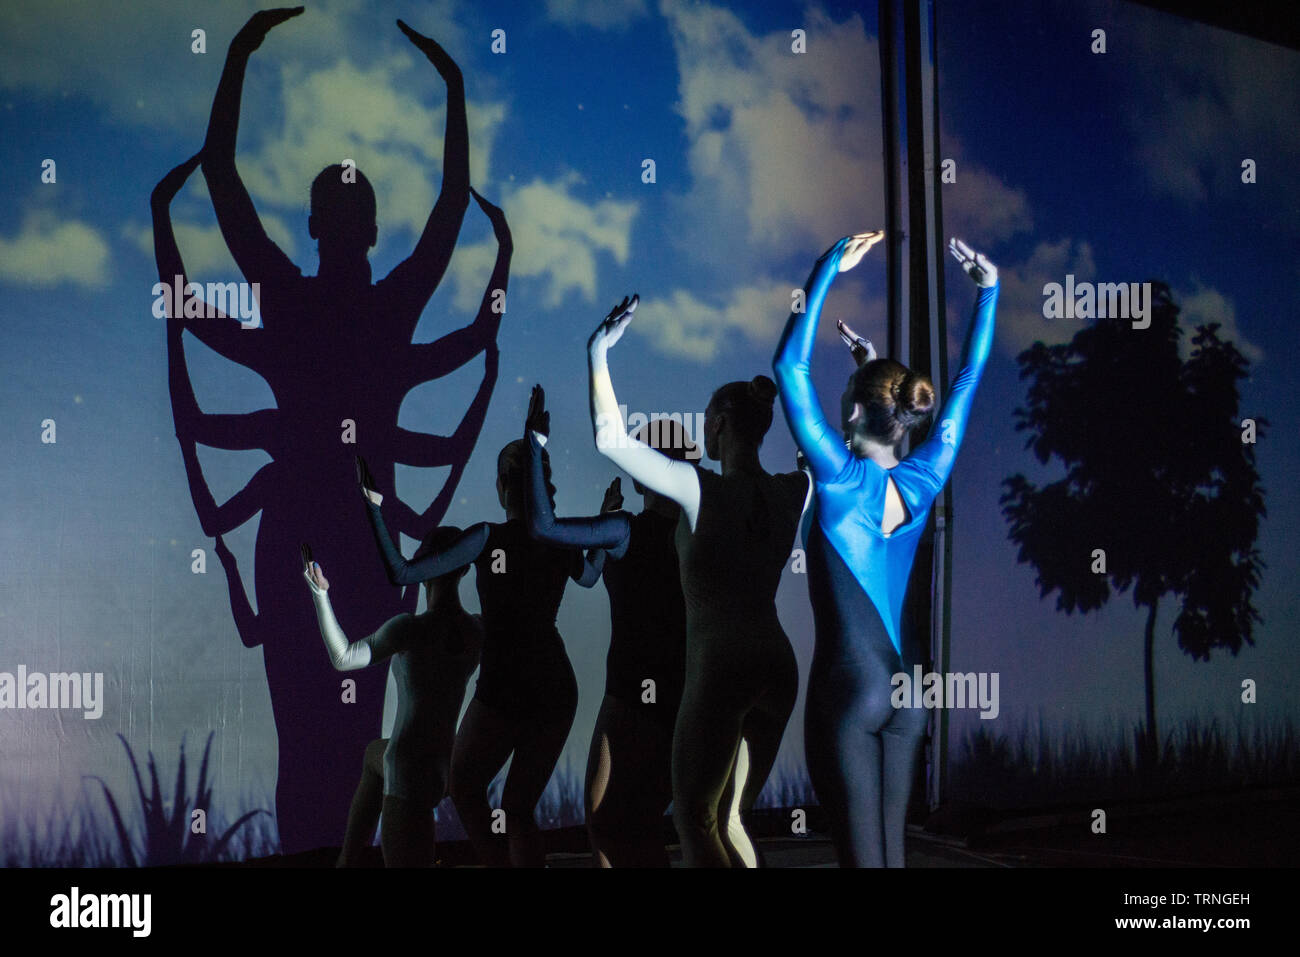 Artists of Teulis Shadow Theater during the performance in